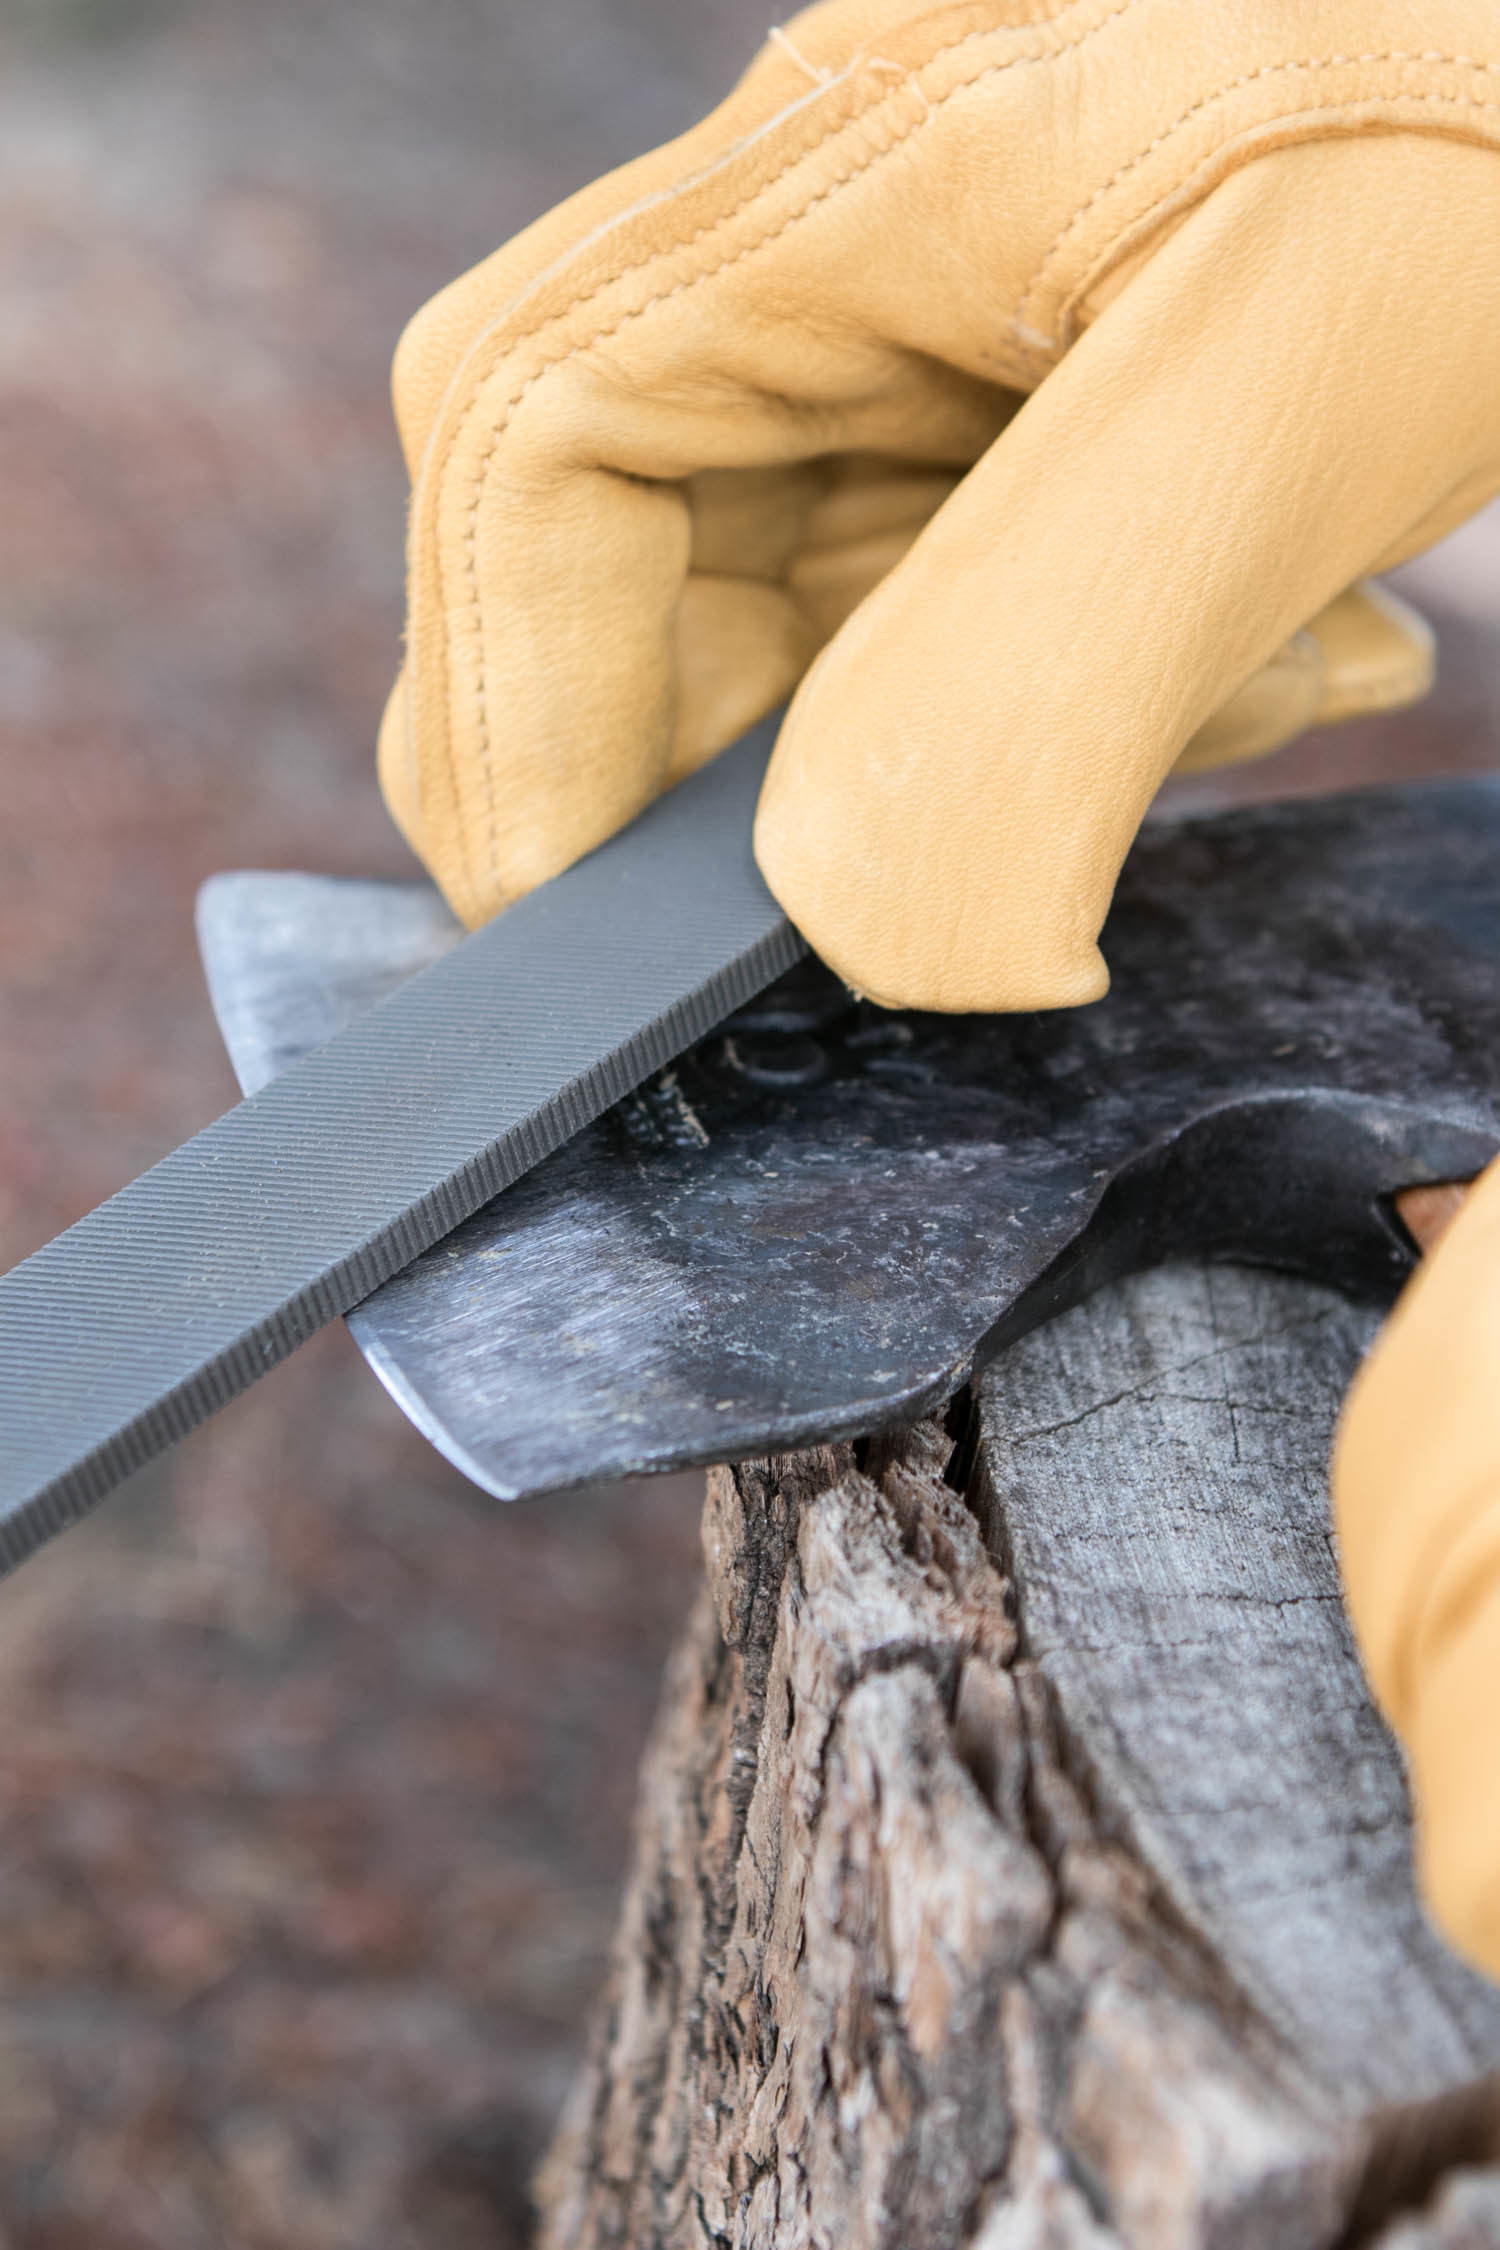 how to sharpen an axe - grinding the edge